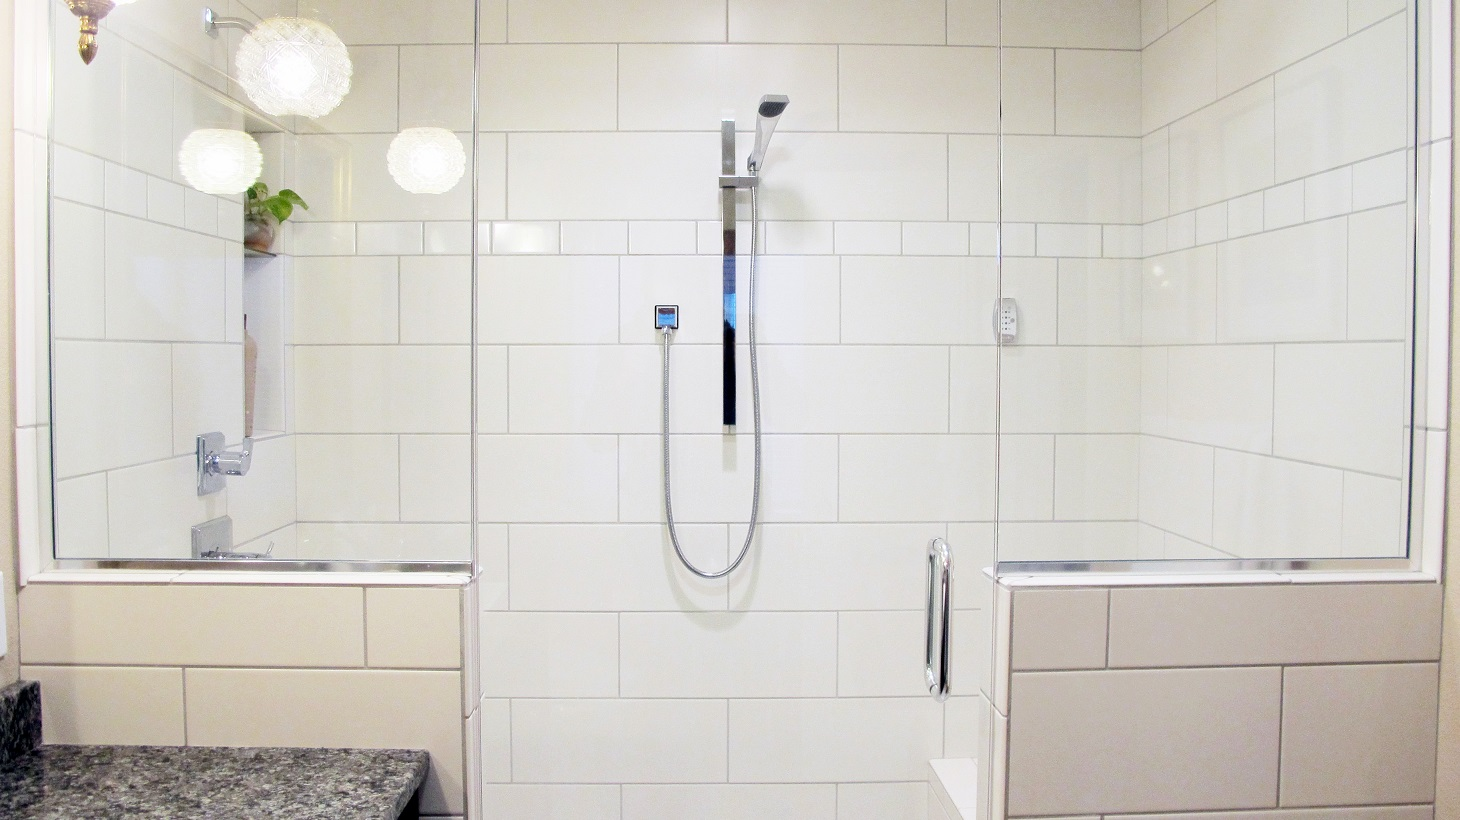 Steam Shower walk in glass enclosed white large format subway tile stagger chrome fixtures pony walls glass enclosed reflection gloss and matte textures ceramic and porcelain tile